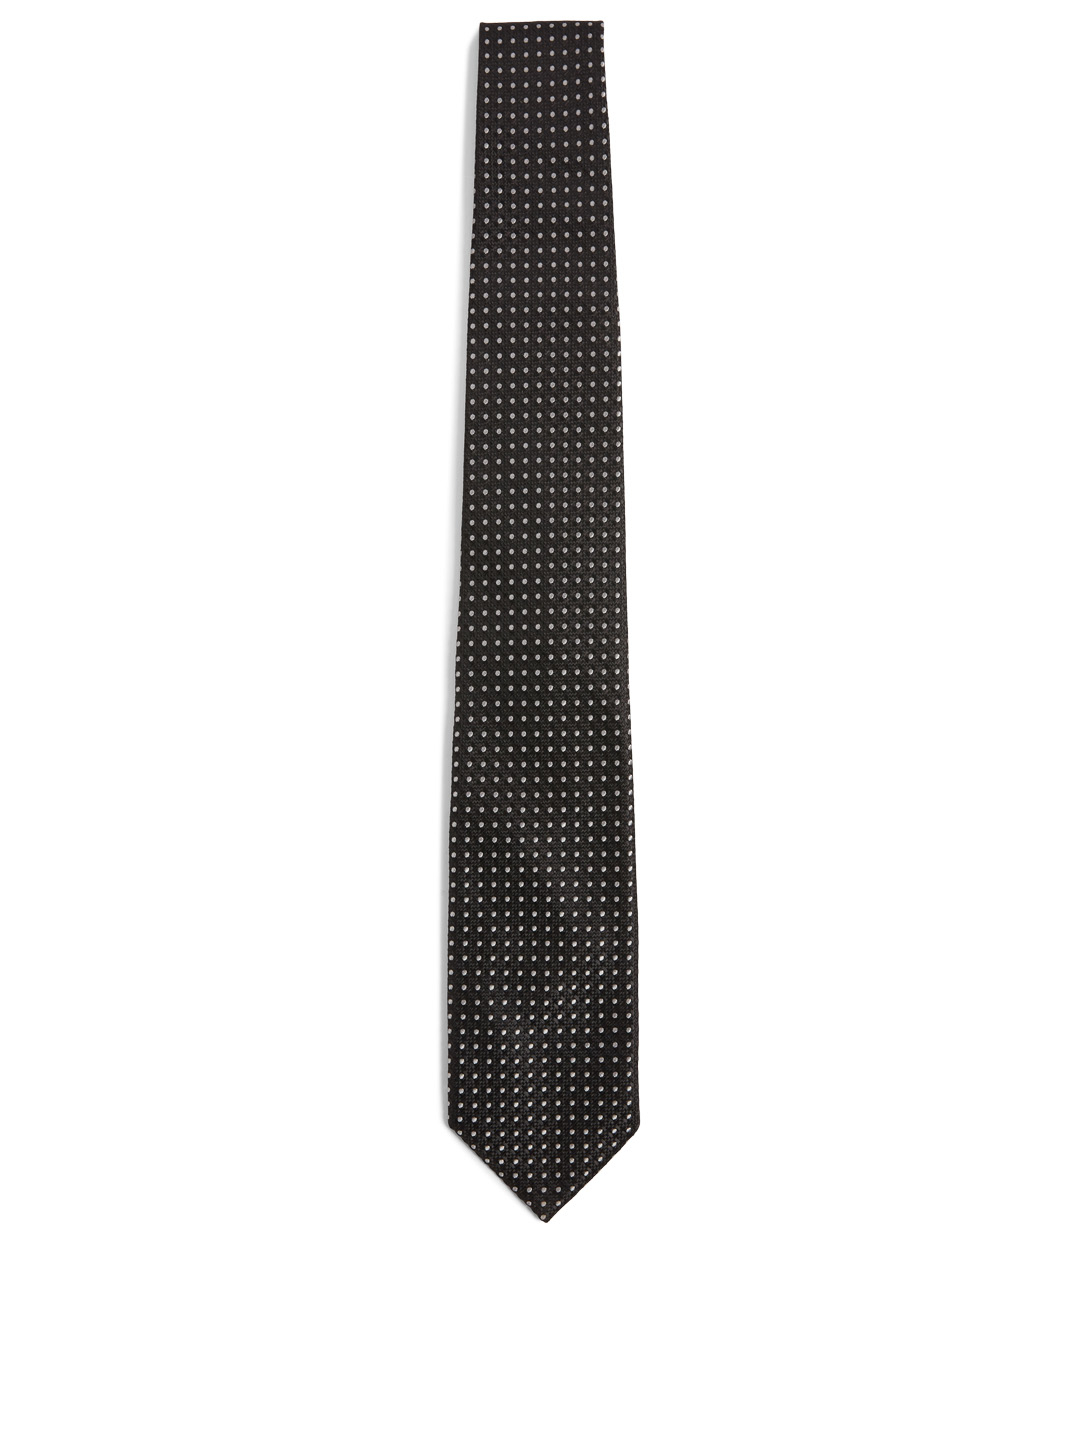 TOM FORD Silk-Blend Tie In Polka Dot Men's Black